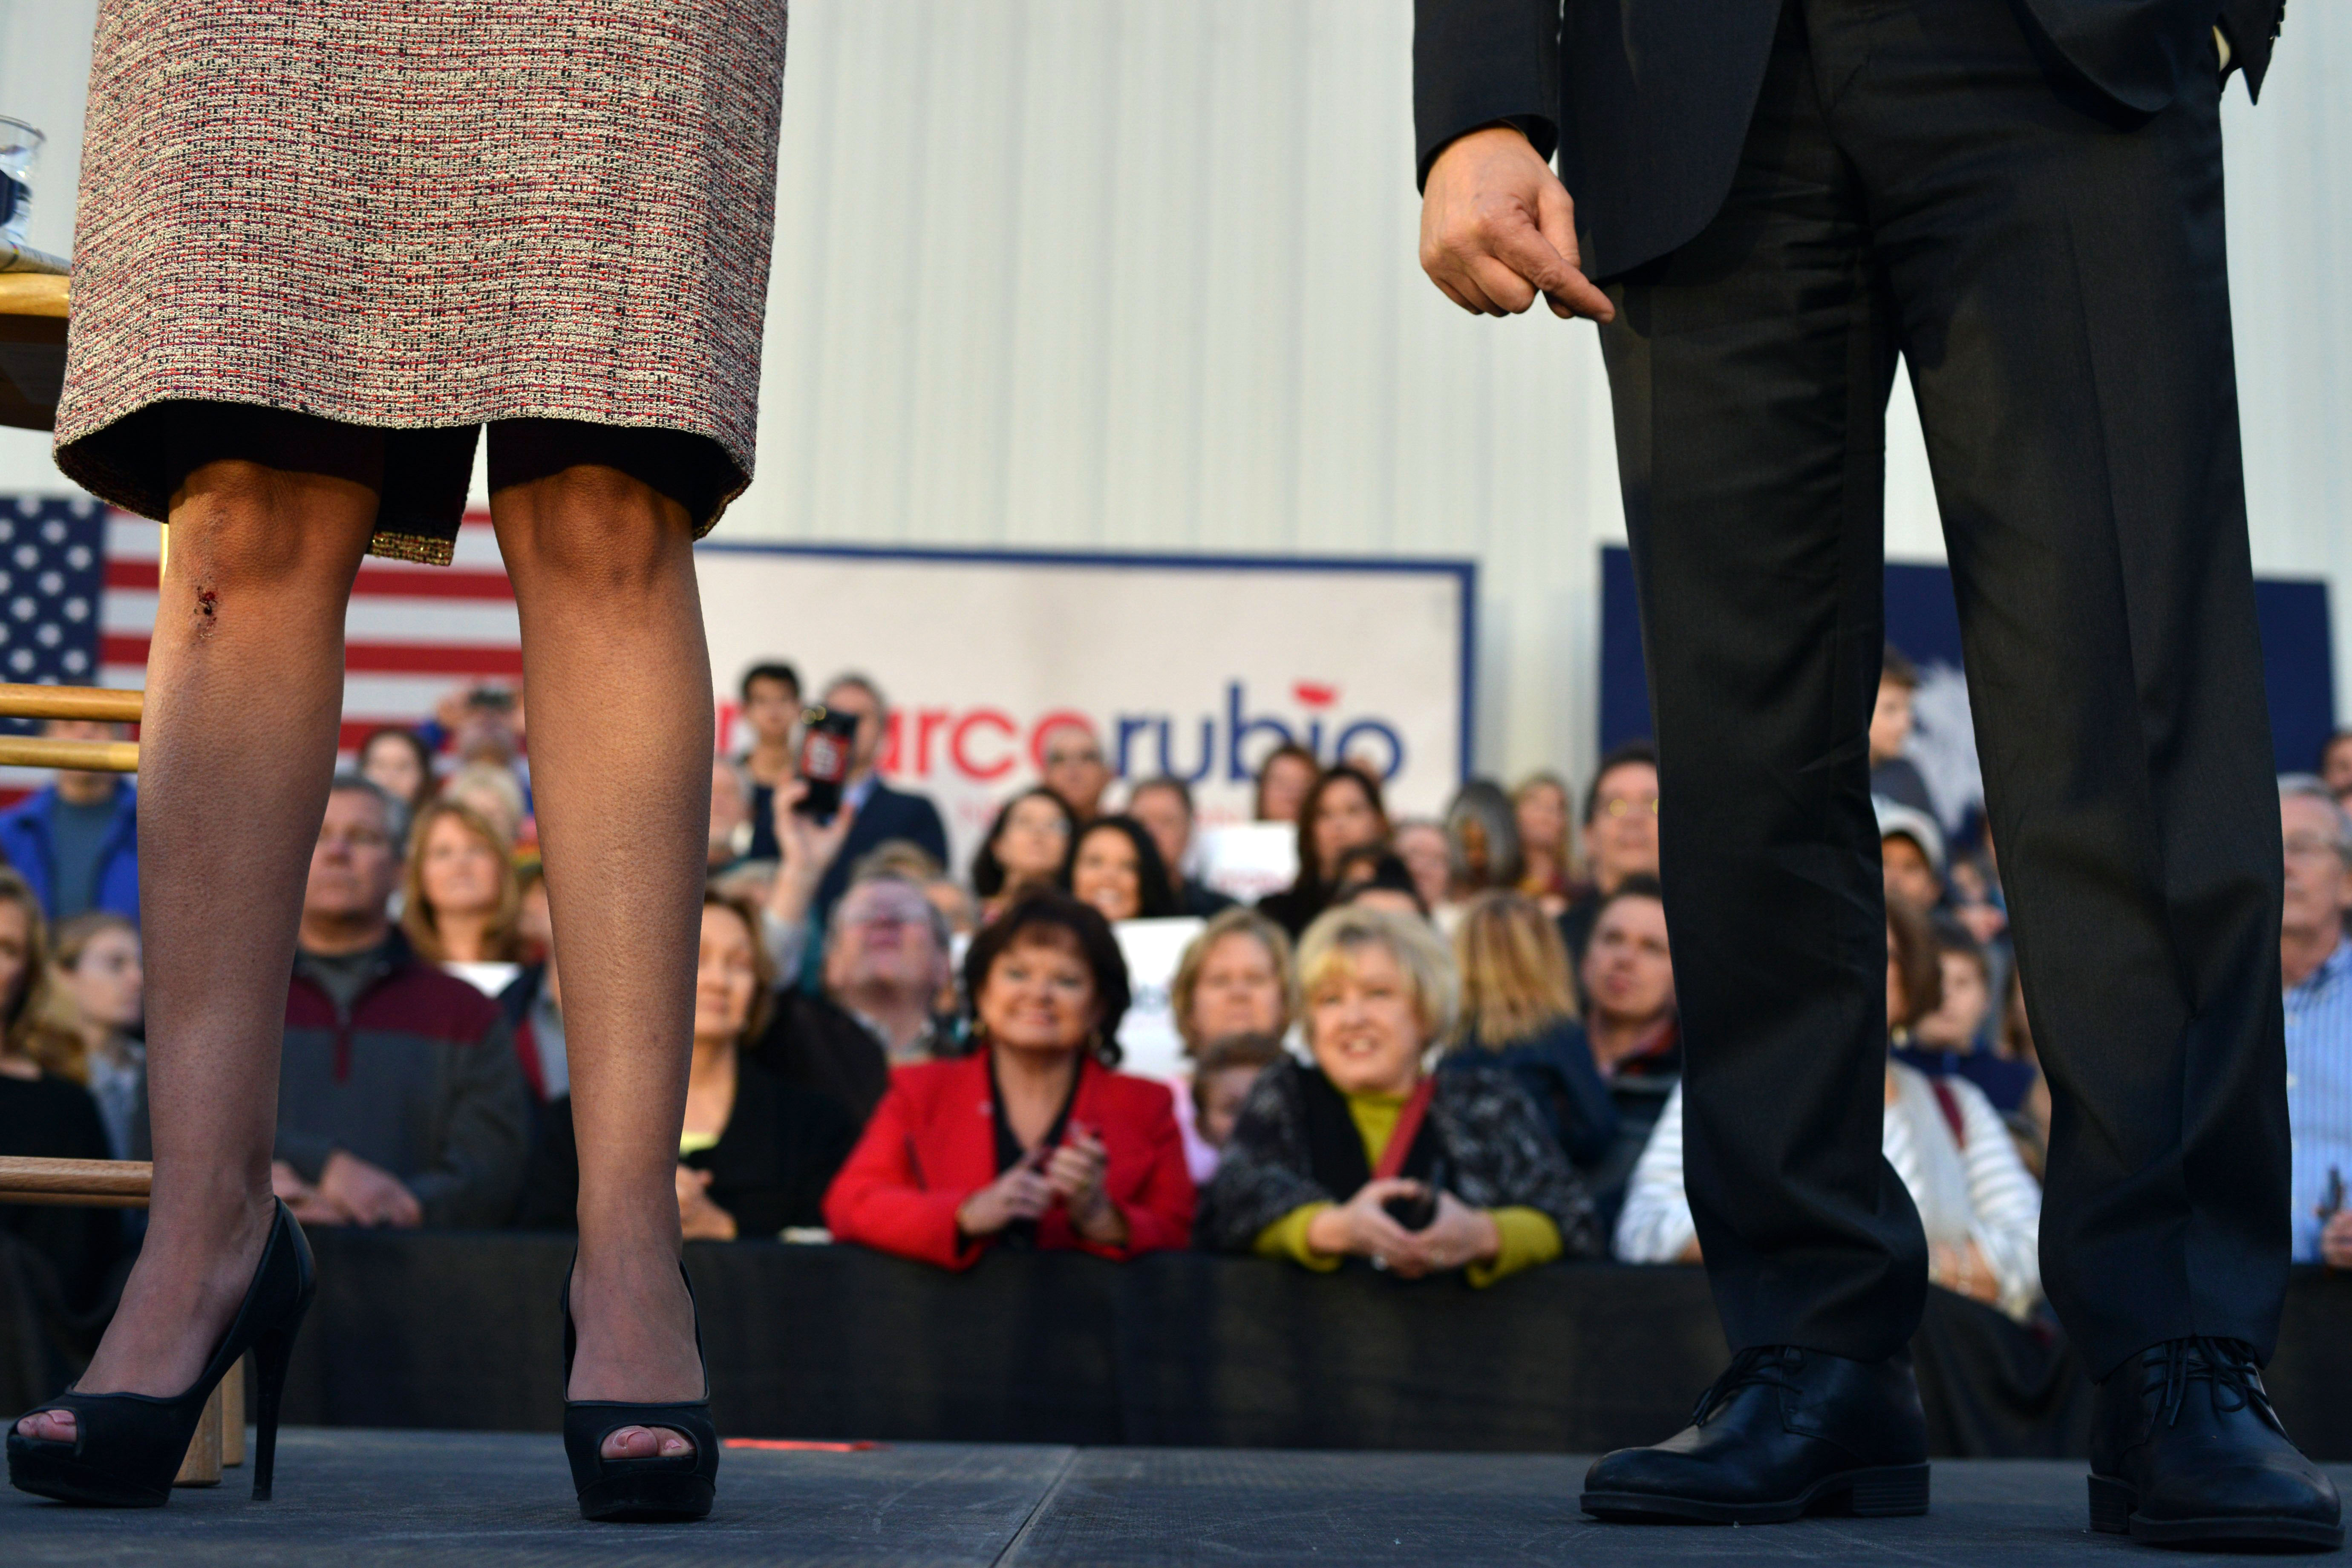 South Carolina Gov. Nikki Haley, left, formally endorses GOP presidential candidate Marco Rubio, right, at a rally in Chapin, S.C. on Feb. 17, 2016.